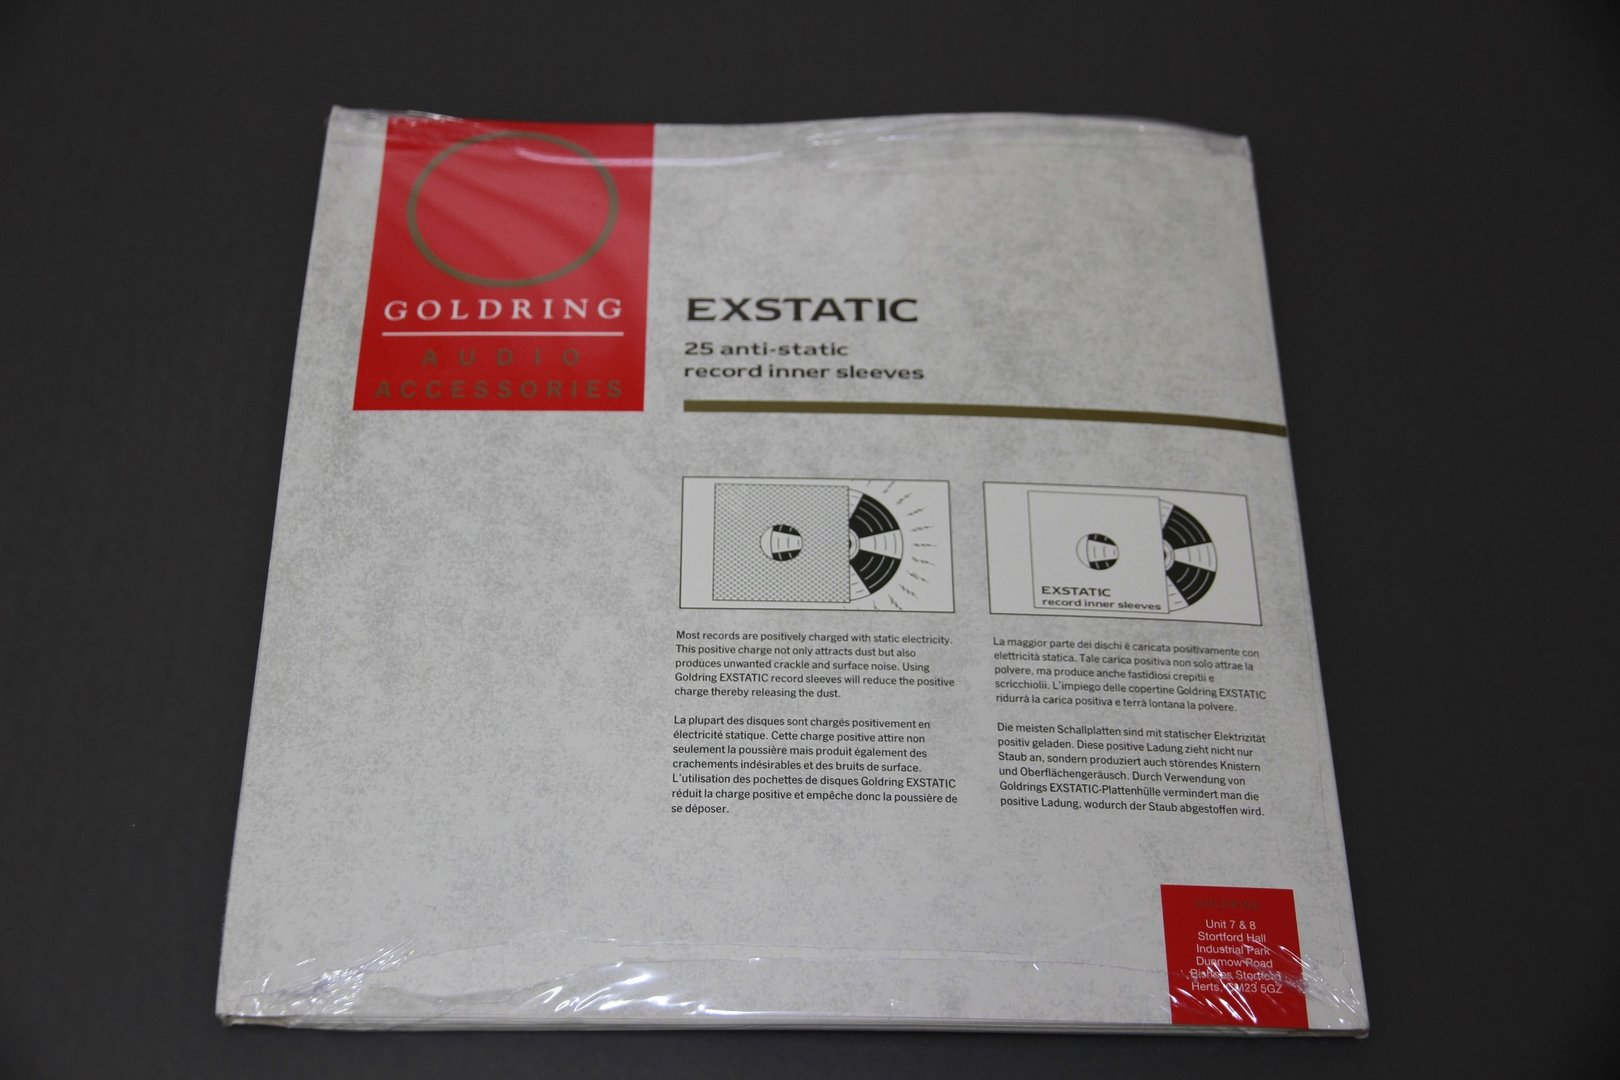 GOLDRING Milty Exstatic Anti-Static Record Inner Sleeves